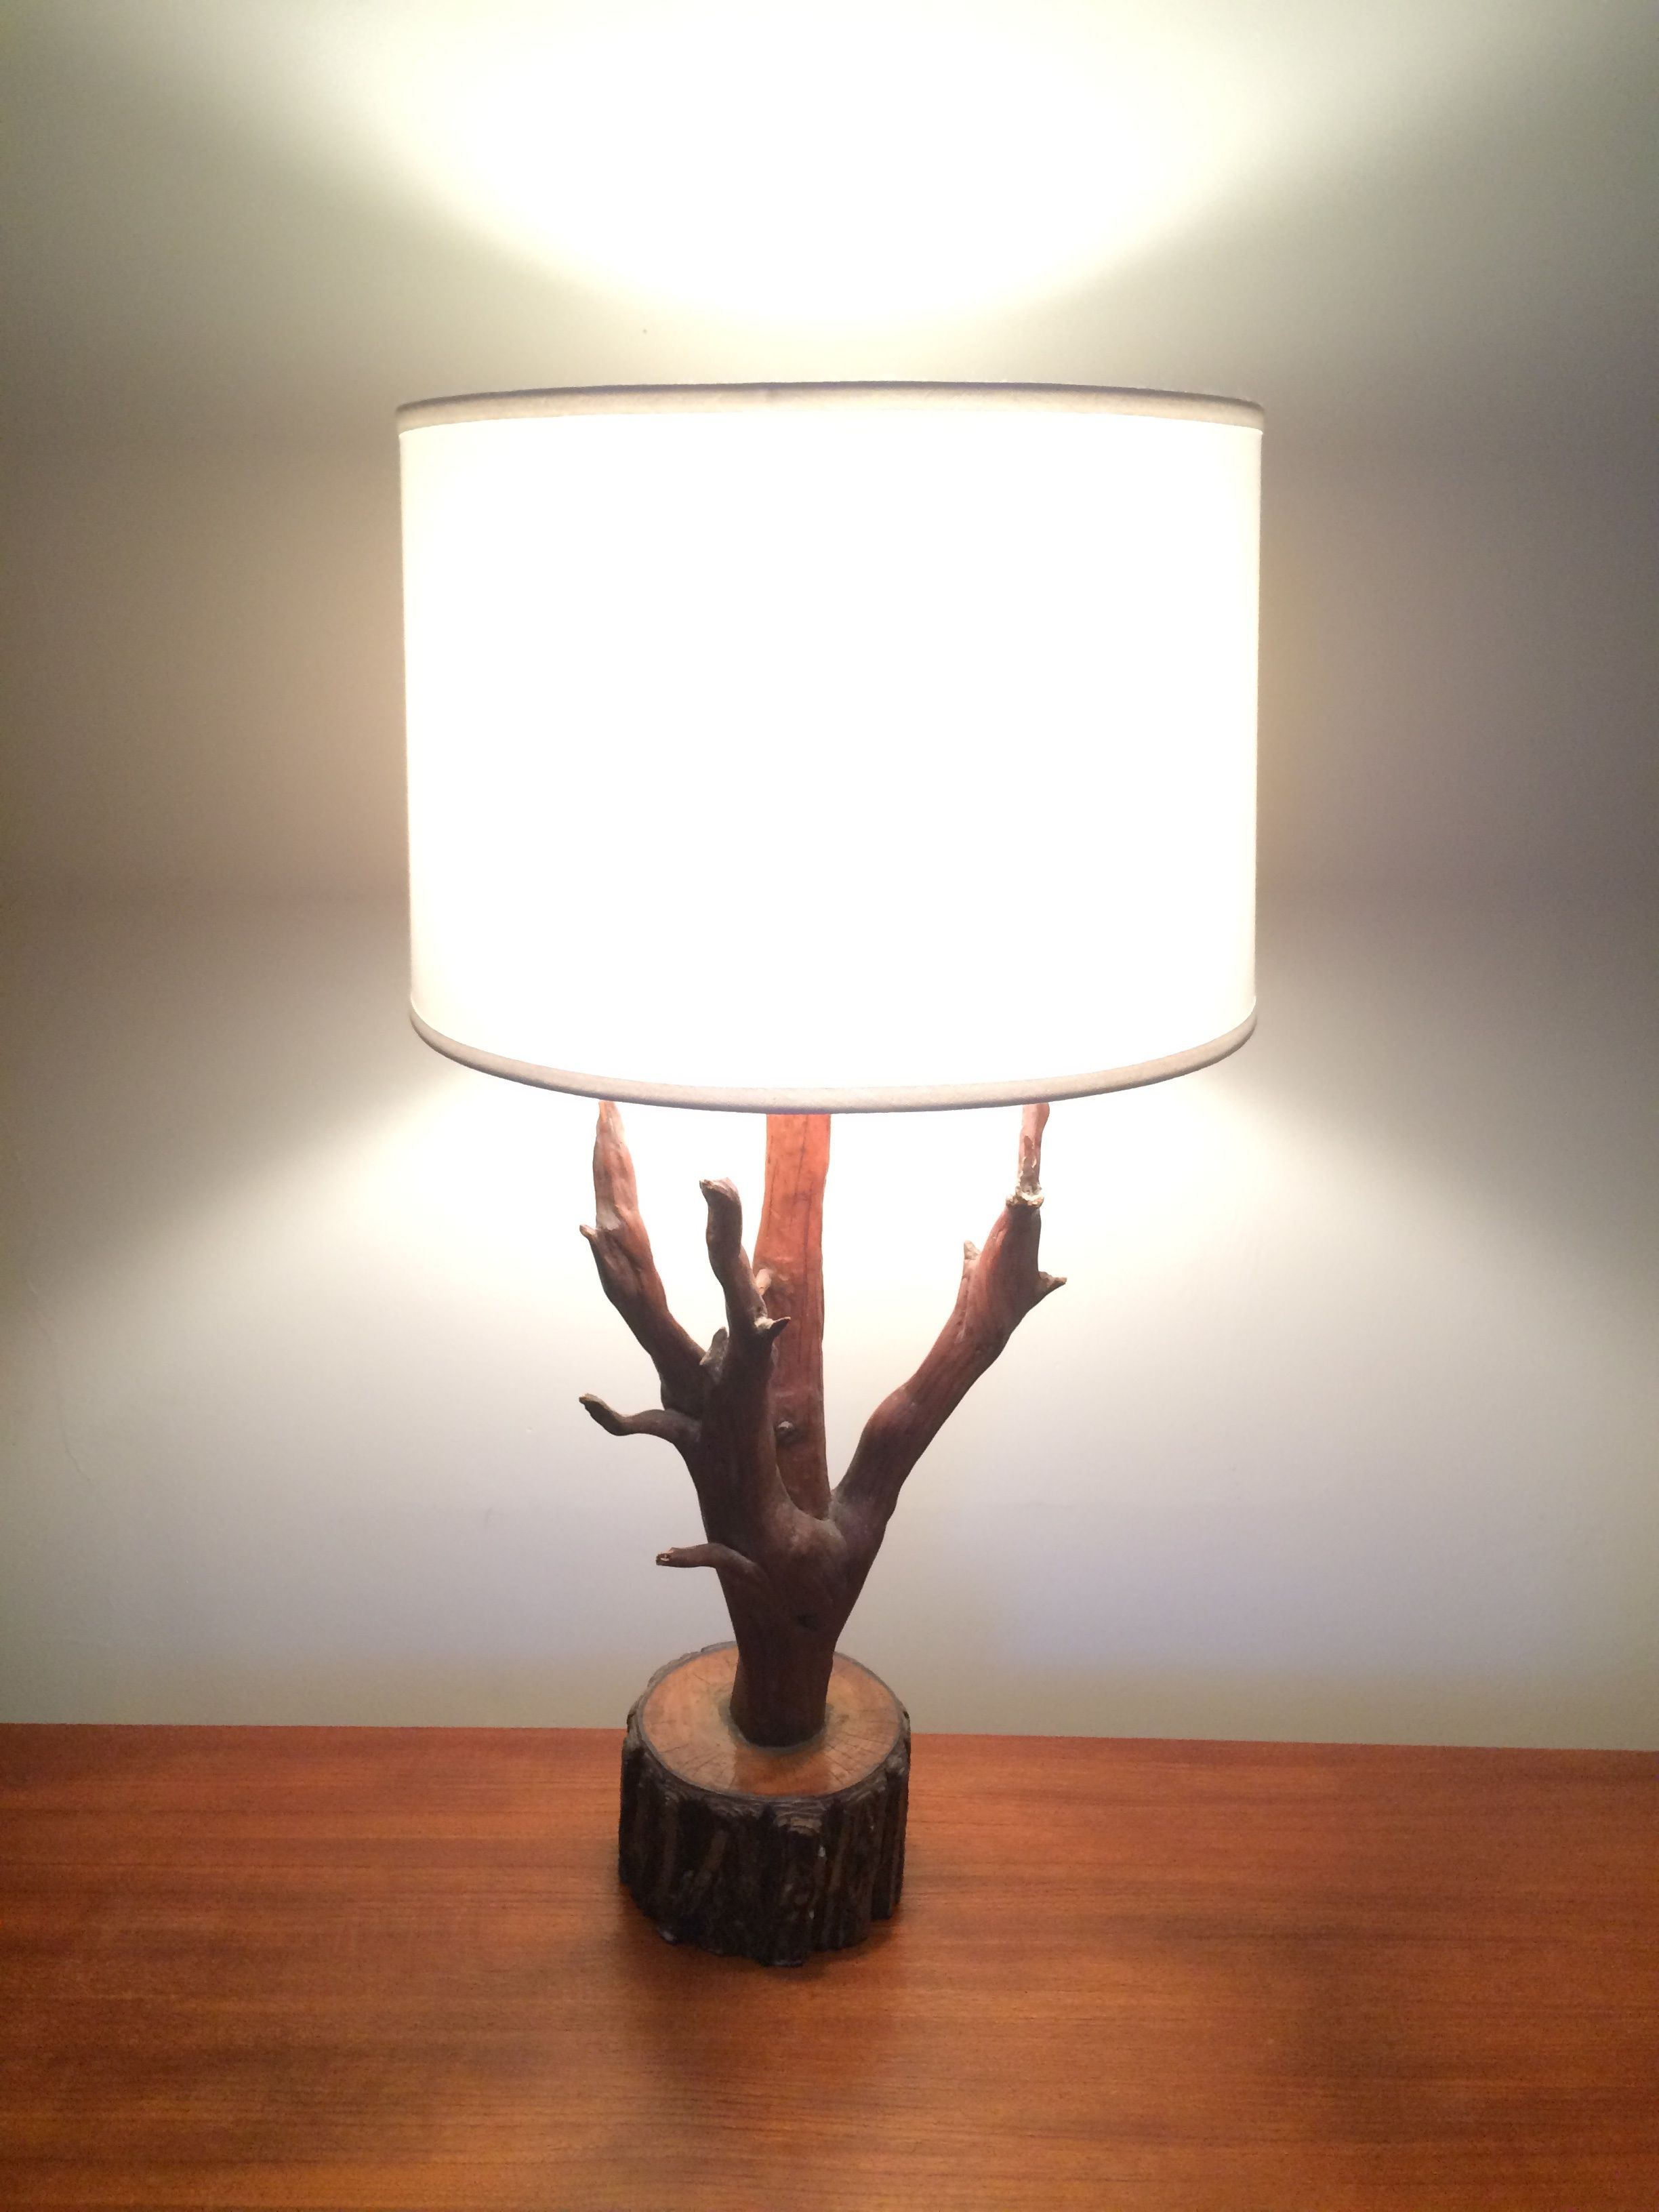 Handmade Natural Wood Log Stick Lamp Base Shade Not Included Perfect For Cottage Or Lodge